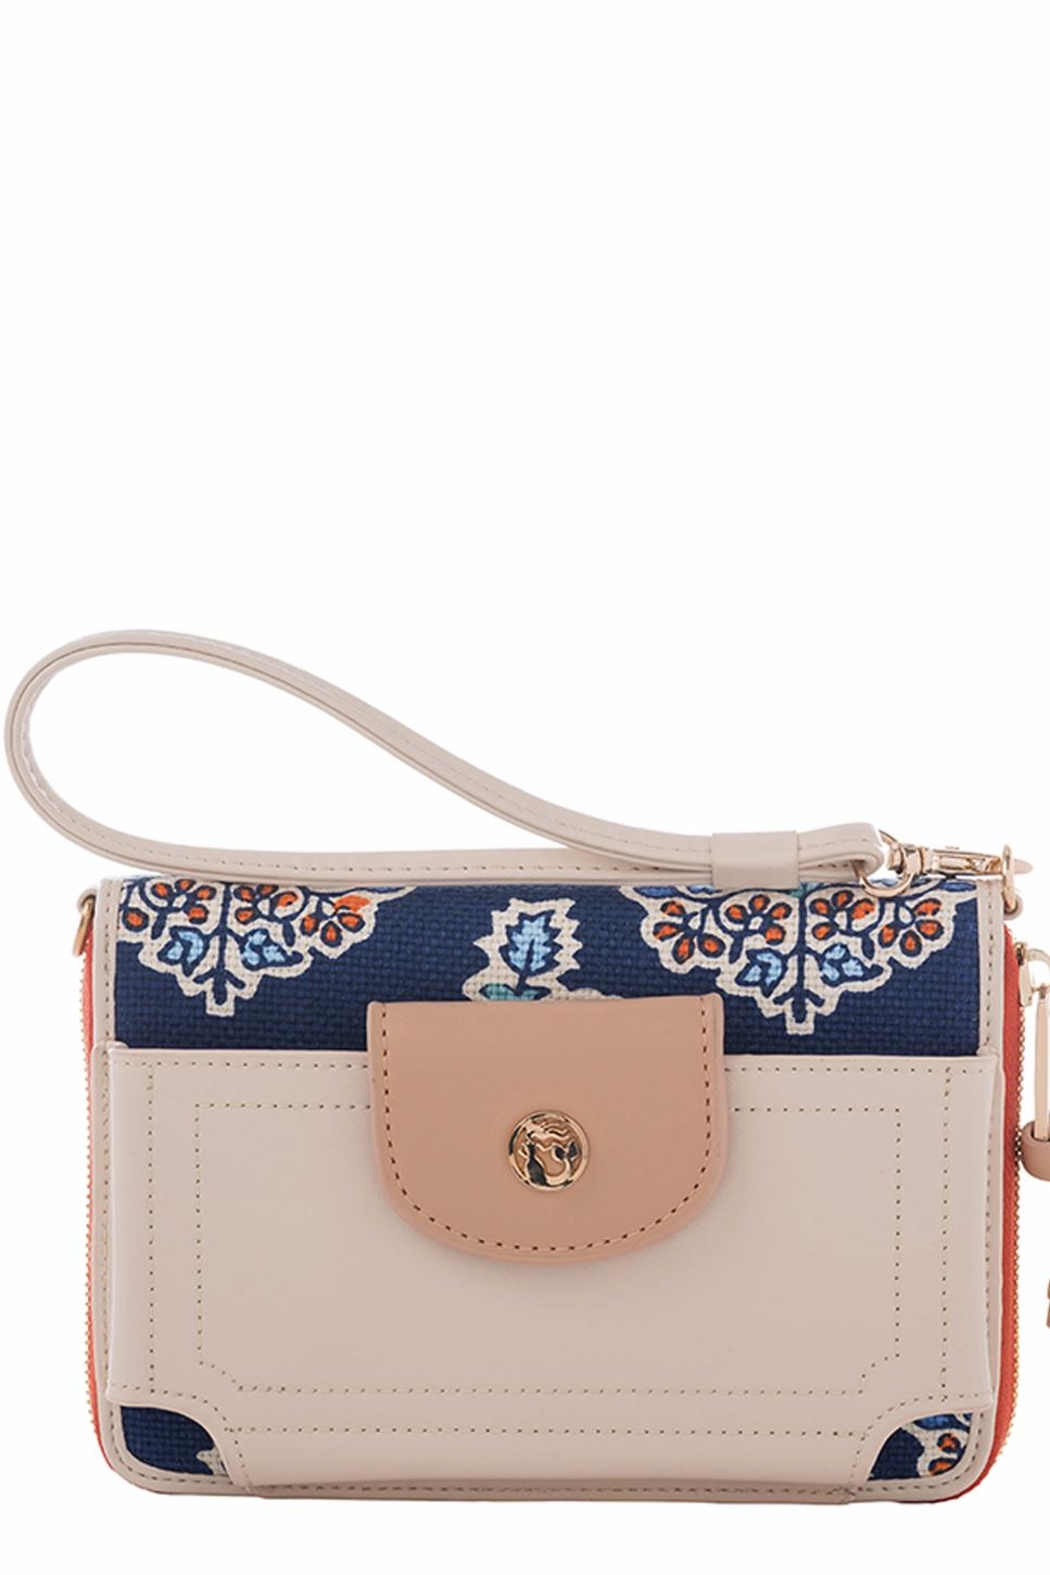 Spartina 449 Boheme Phone Wallet - Main Image